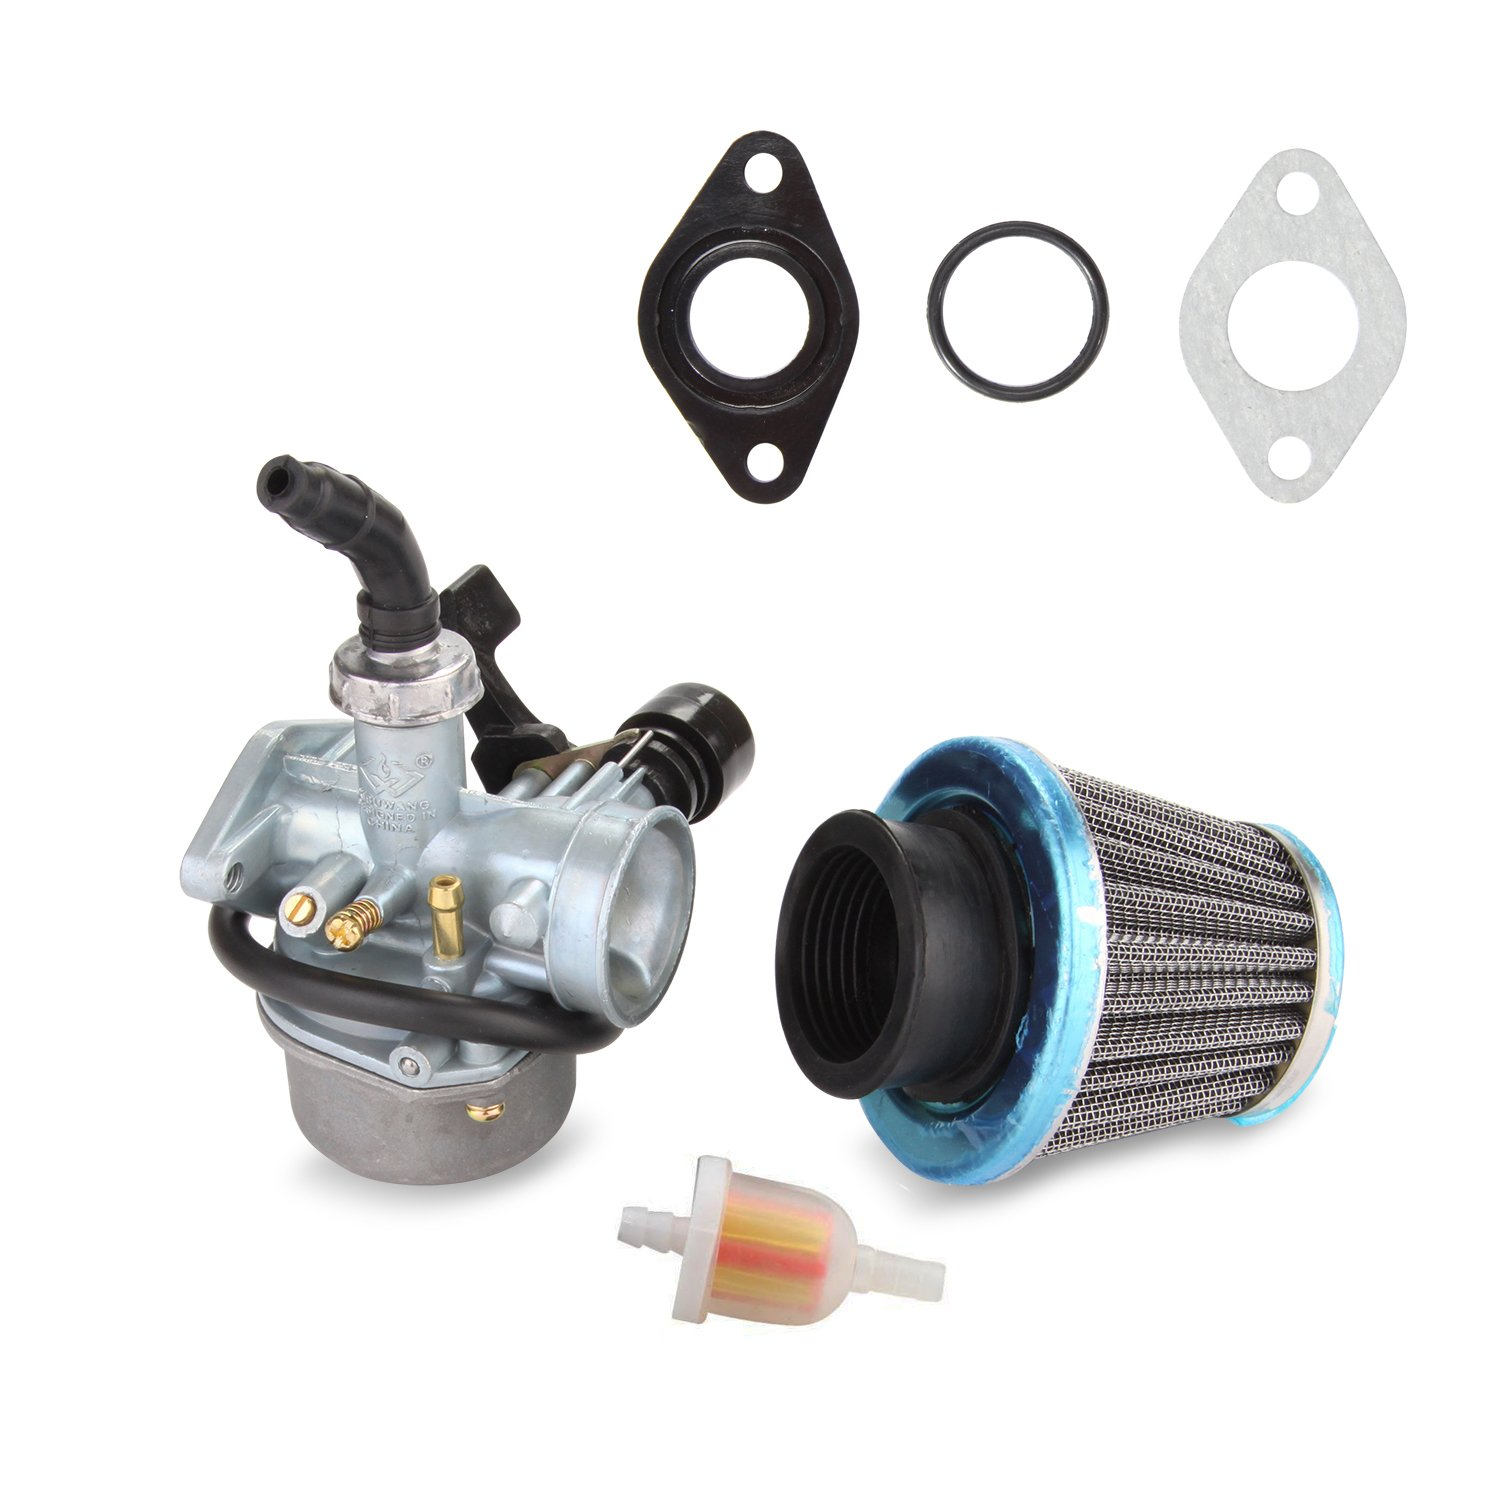 Amazon.com: ATV Carburetor PZ19 with Fuel Filter and 35mm Air Filter for  50cc 70cc 80cc 90cc 110cc 125cc ATV Dirt Pit Bike Taotao Honda CRF By  LIAMTU: ...